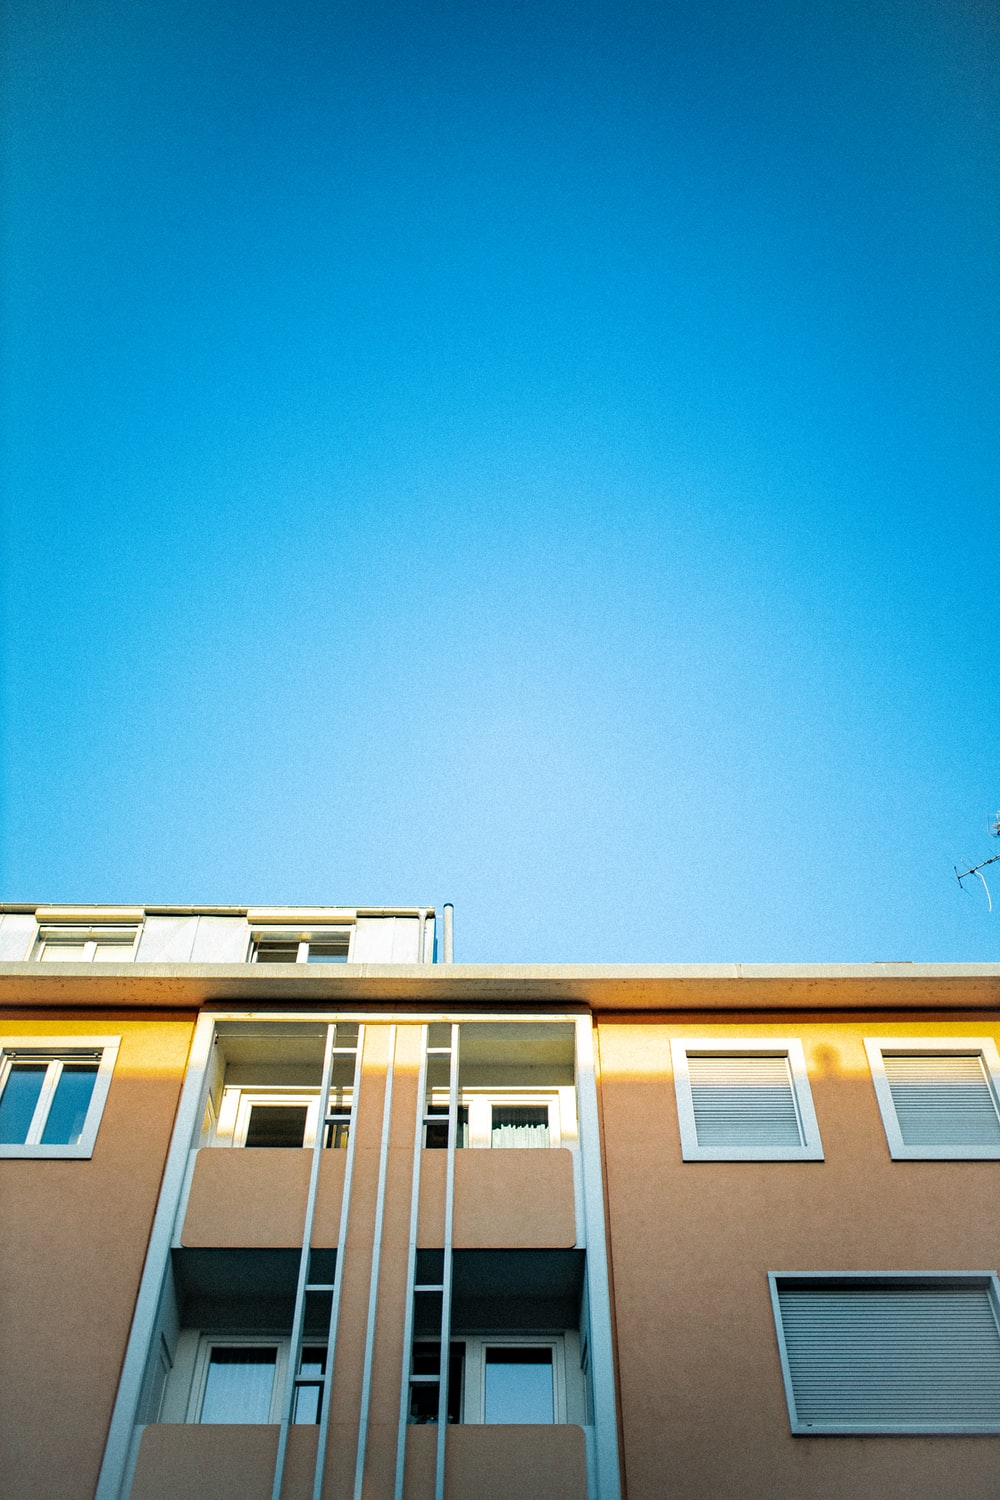 white and blue concrete house under blue sky during daytime